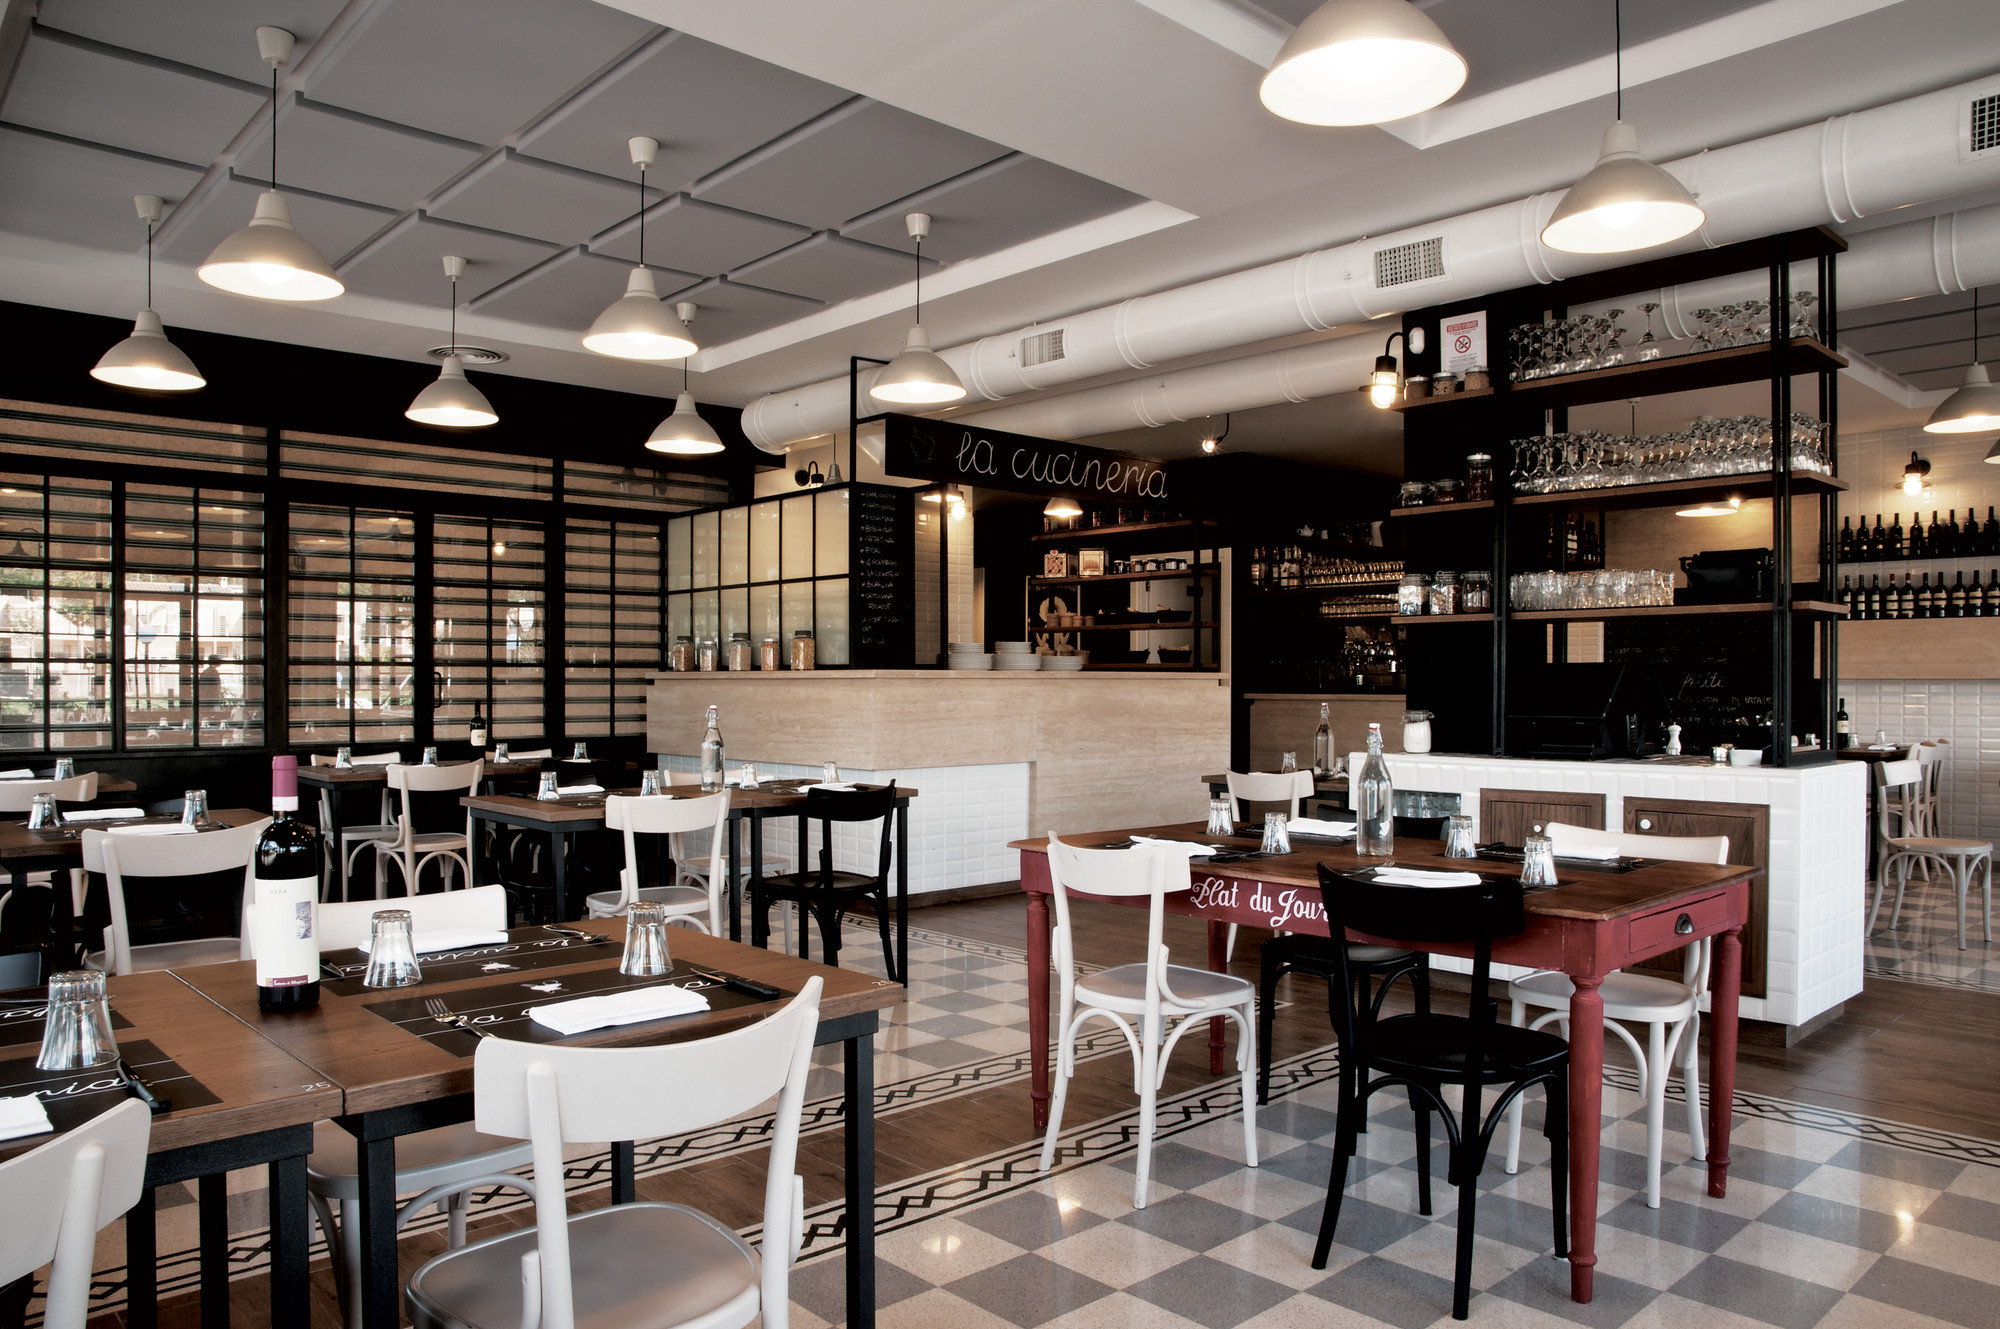 Gallery Of La Cucineria Noses Architects 13